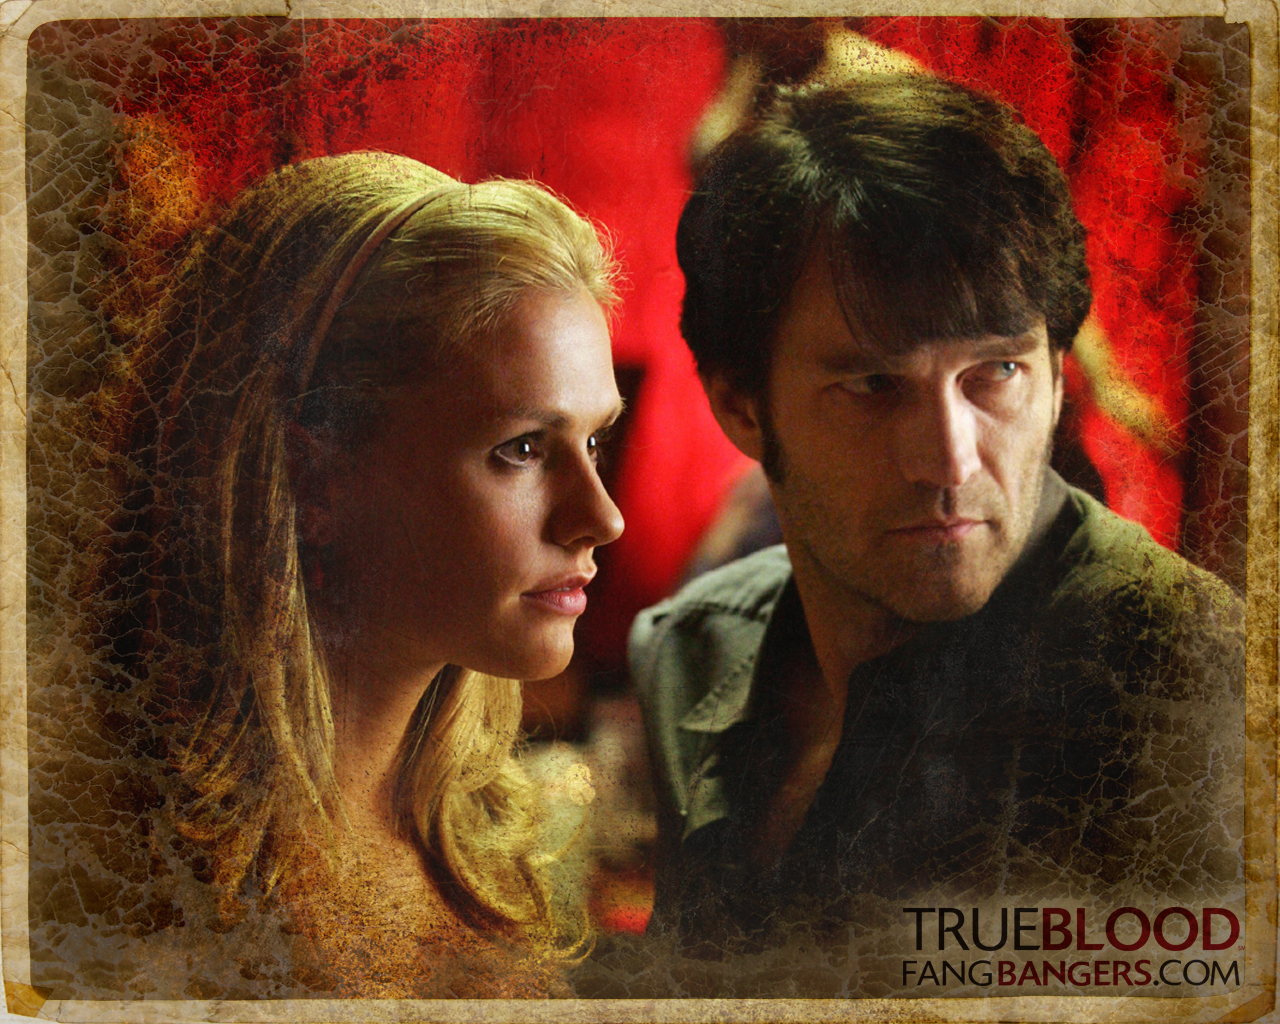 True Blood-Sookie and Bill 3 by coffeestained on DeviantArt